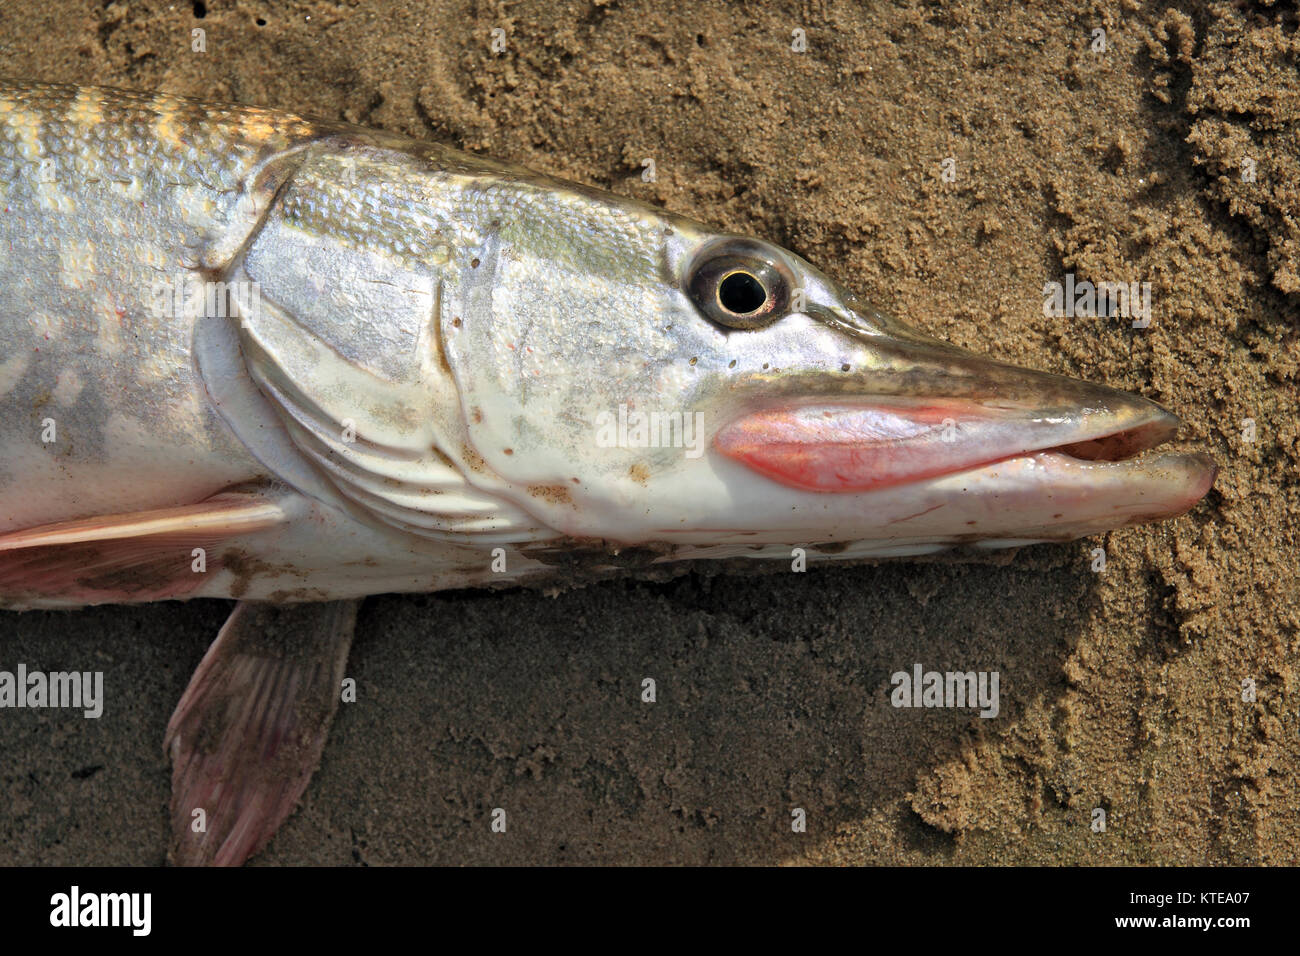 Pike Jaw Stock Photos & Pike Jaw Stock Images - Alamy